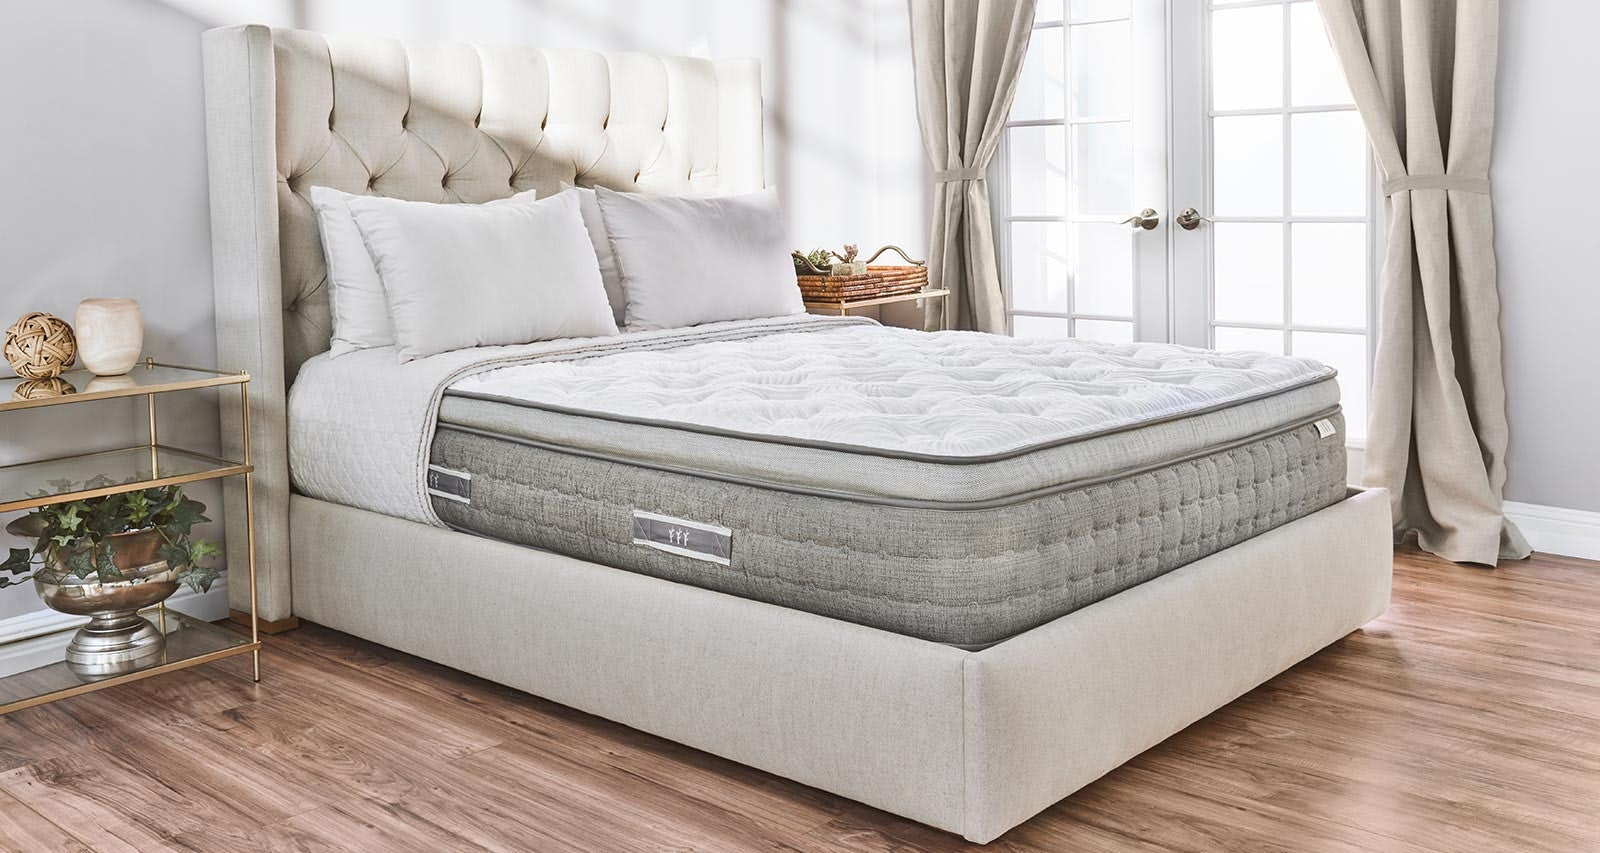 Coronado Mattress Brentwood Home